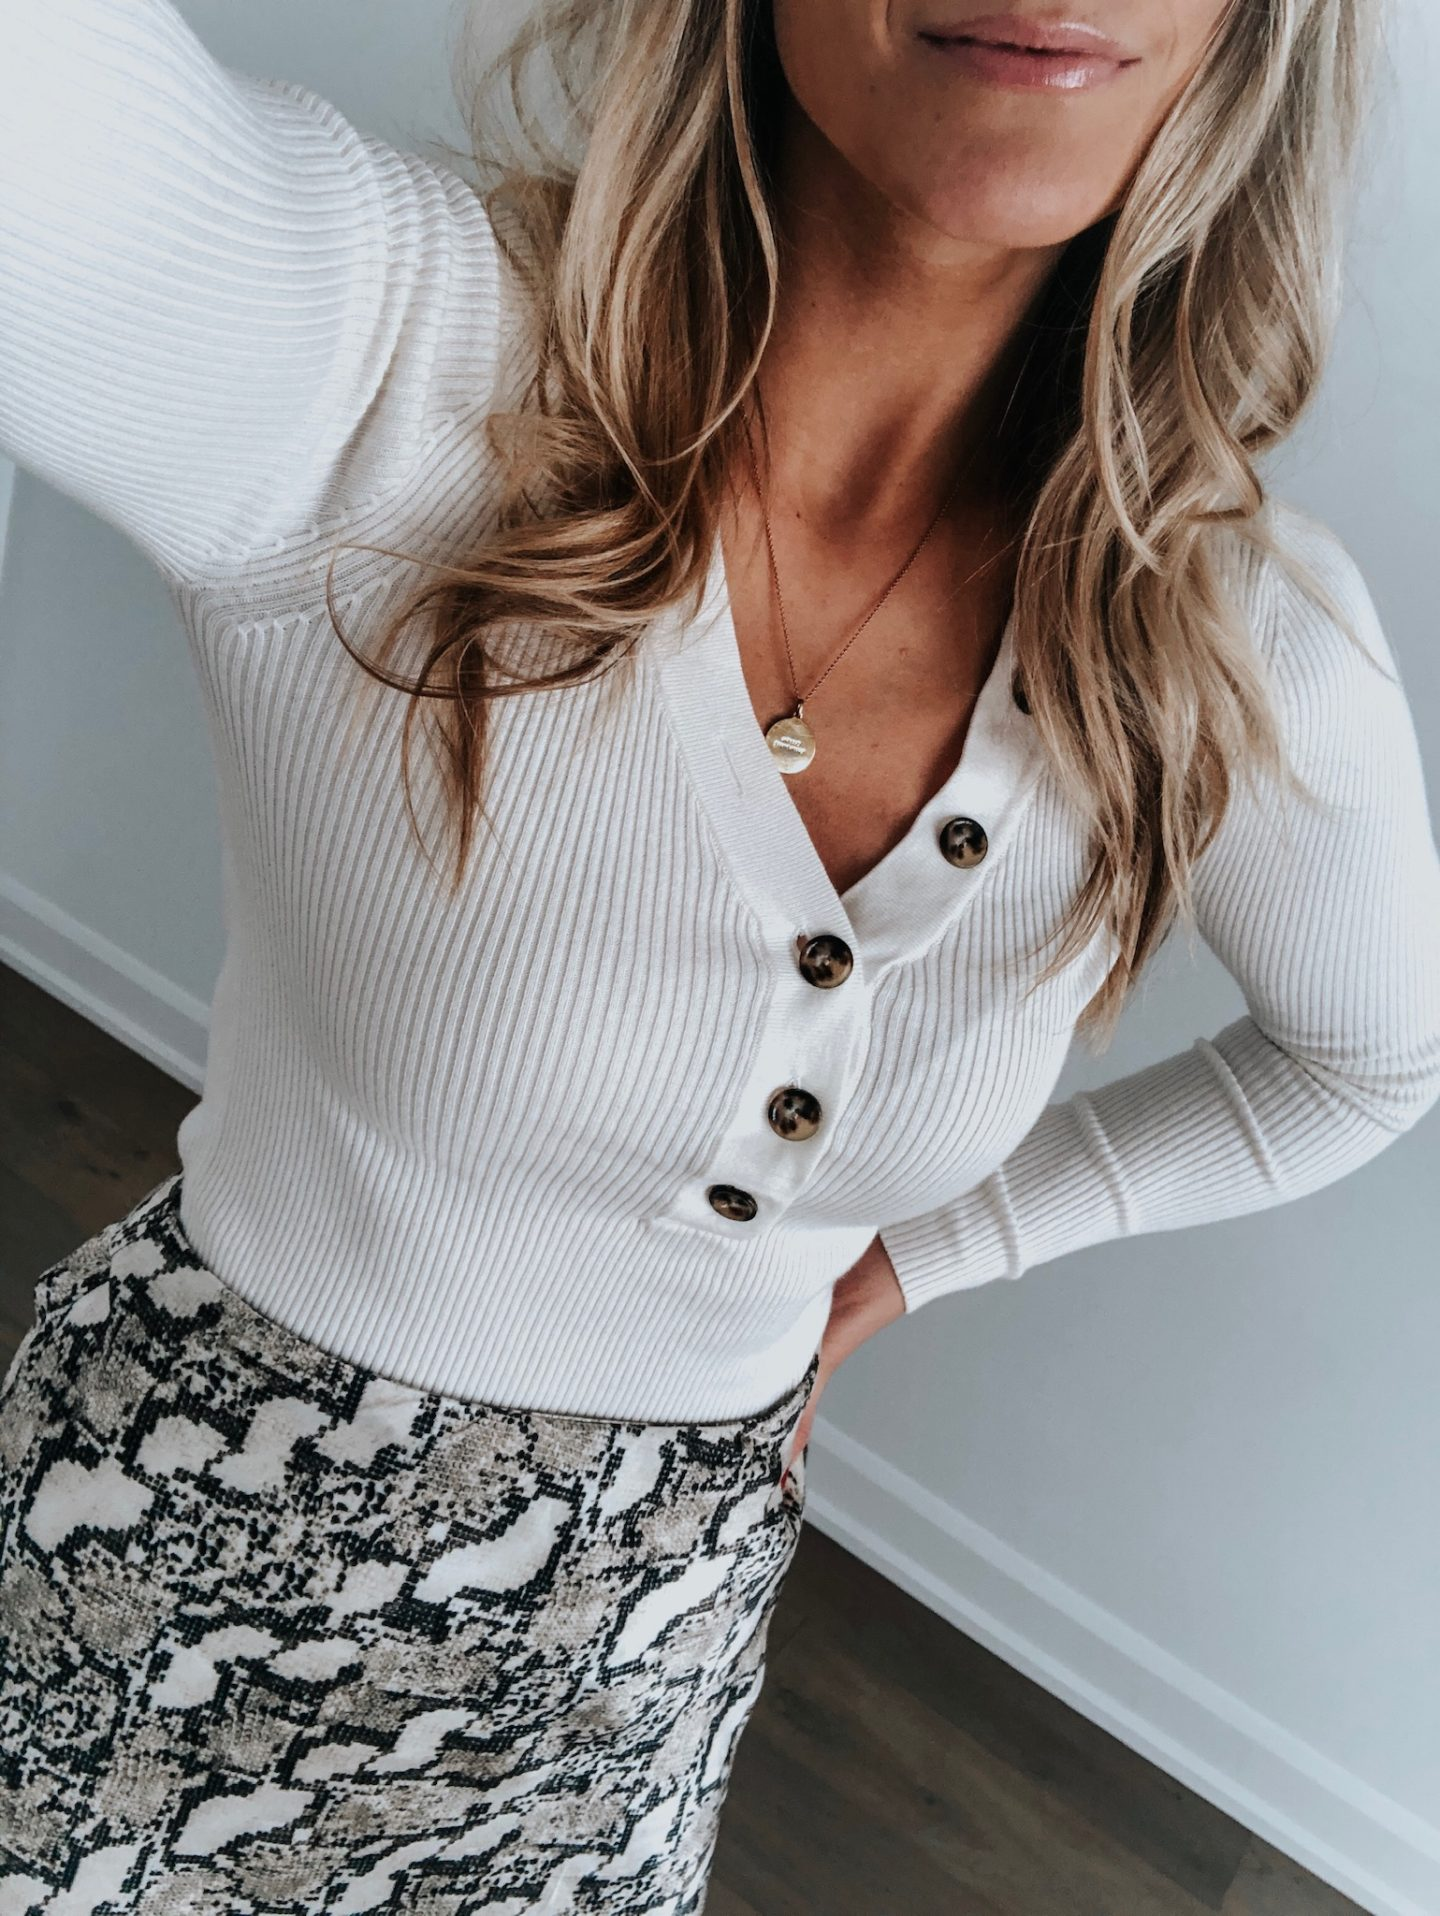 blonde girl wearing snake print skirt and white top